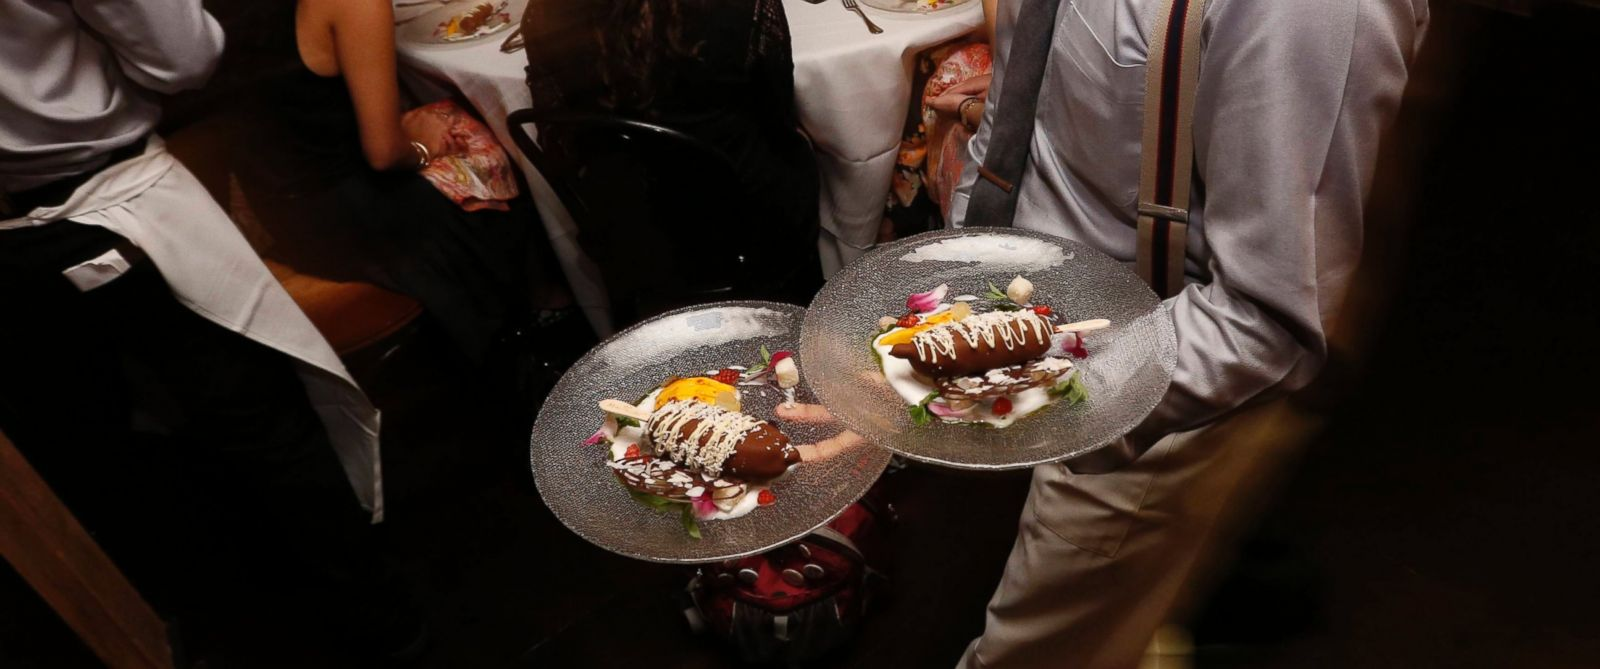 PHOTO: Magnum being served to fashion and food influencers.